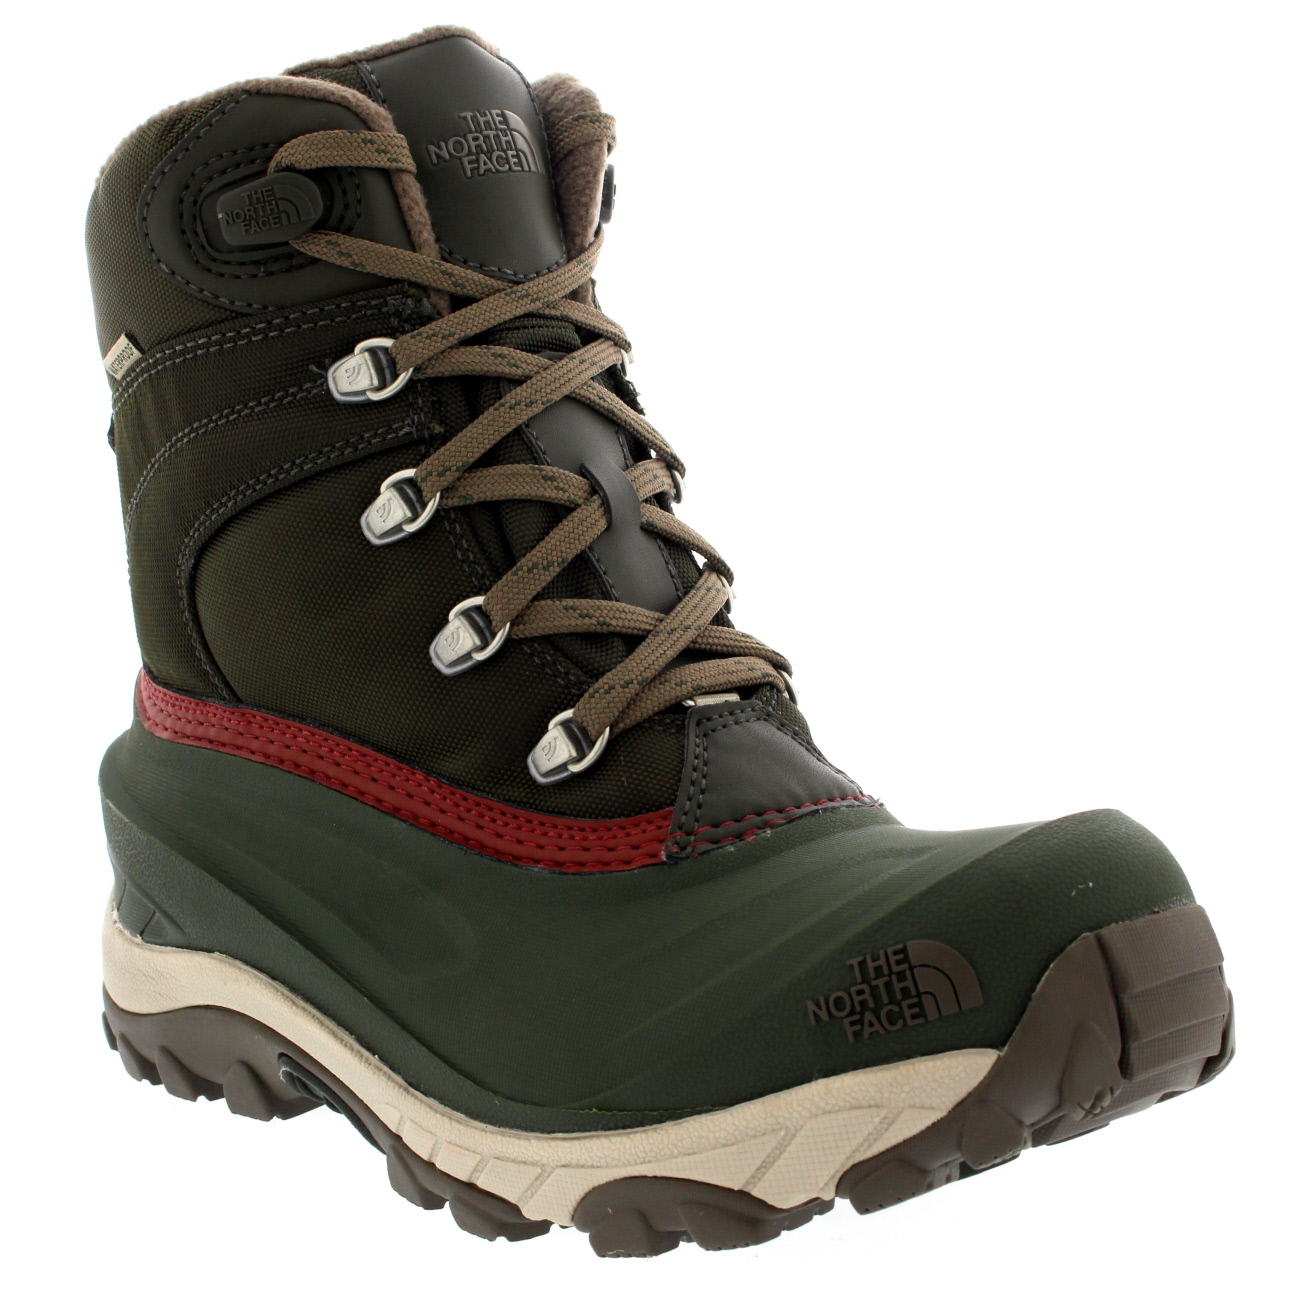 The North Face Chilkat II Nylon